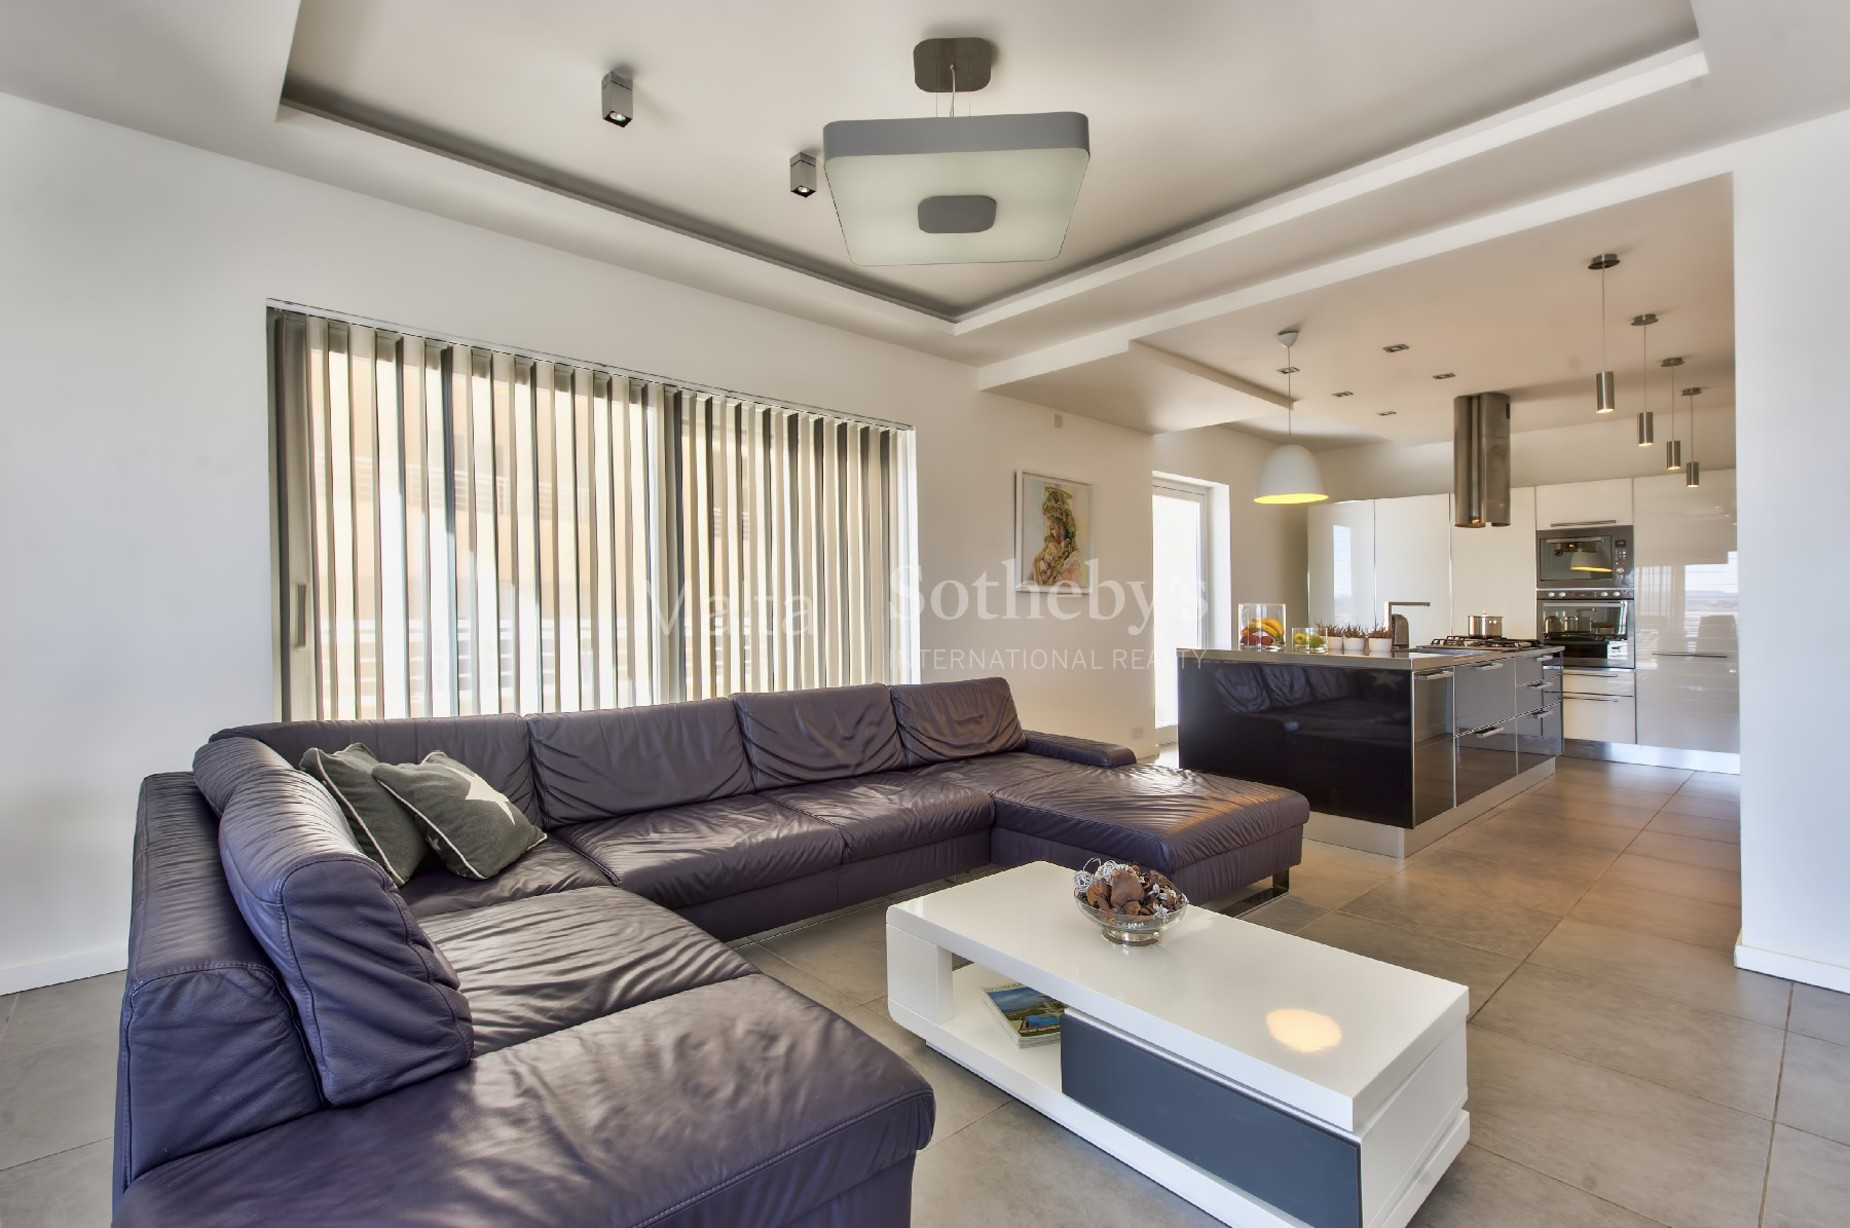 2 bed Apartment For Rent in Sliema, Sliema - thumb 5